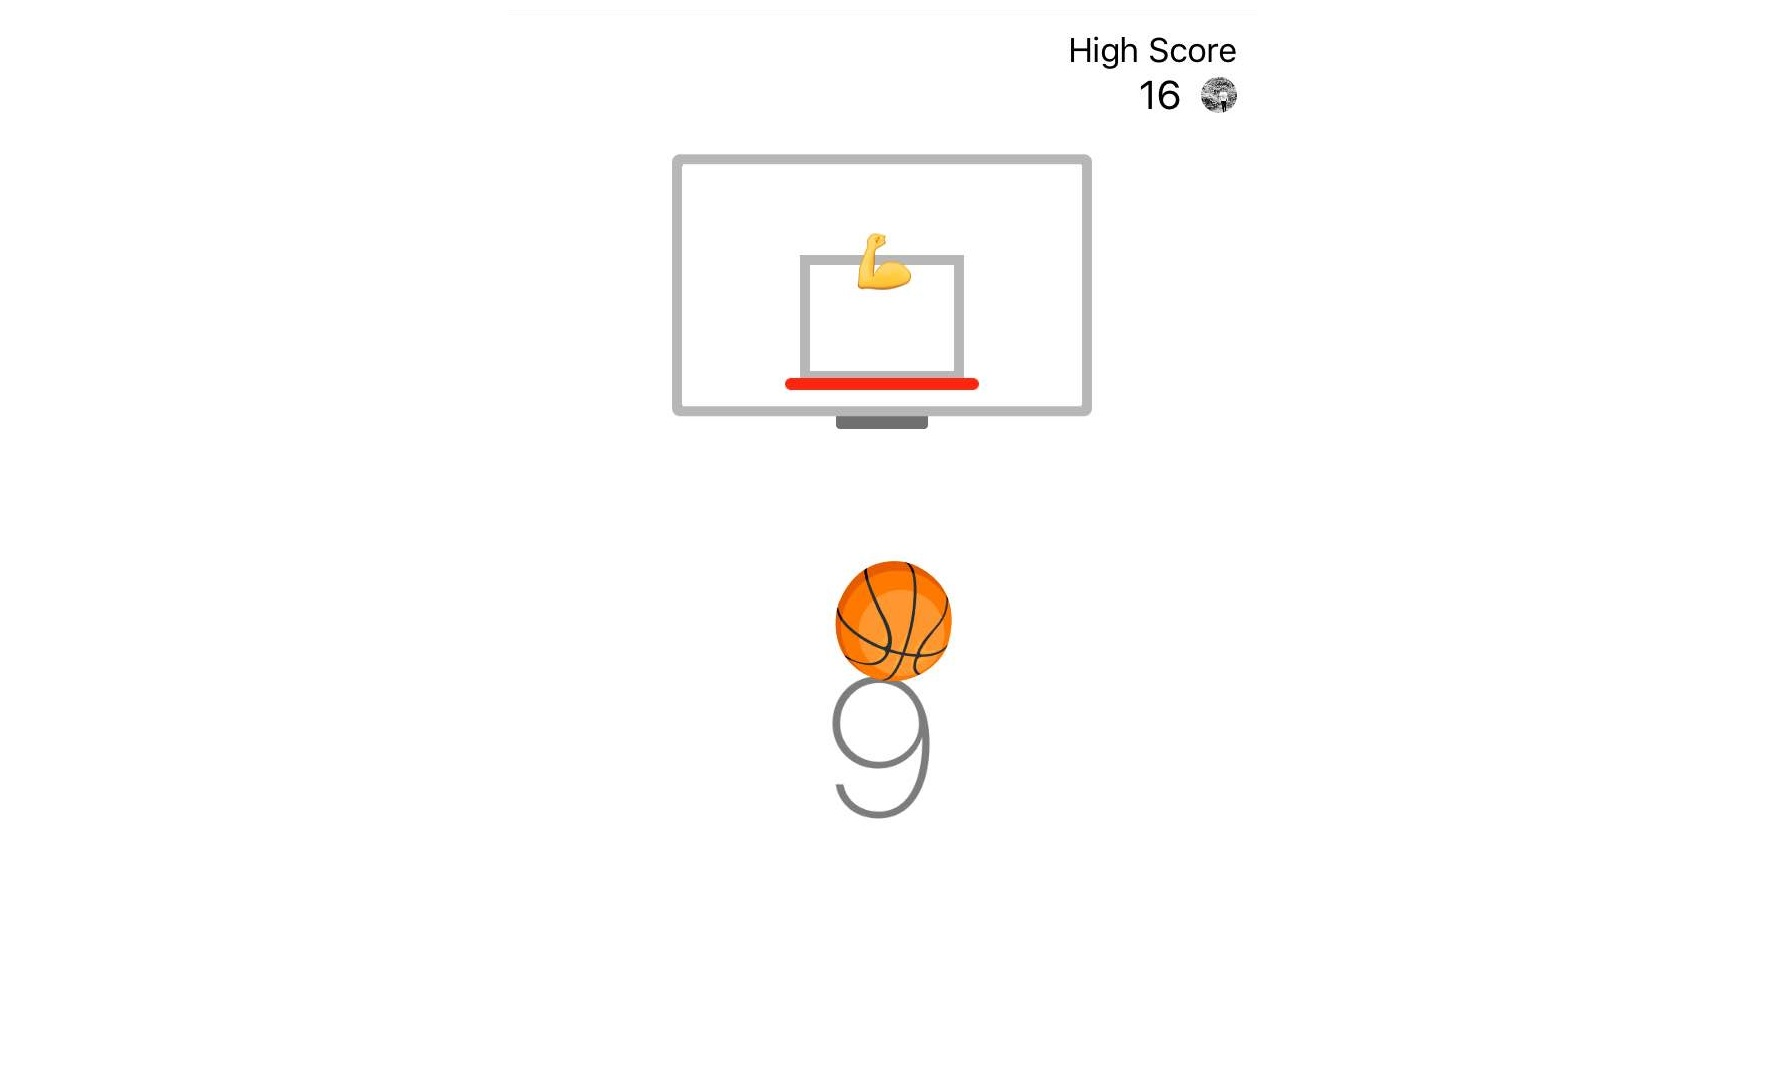 Facebook messenger 101 tips tricks and secret games the verge facebook basketball play with codes buycottarizona